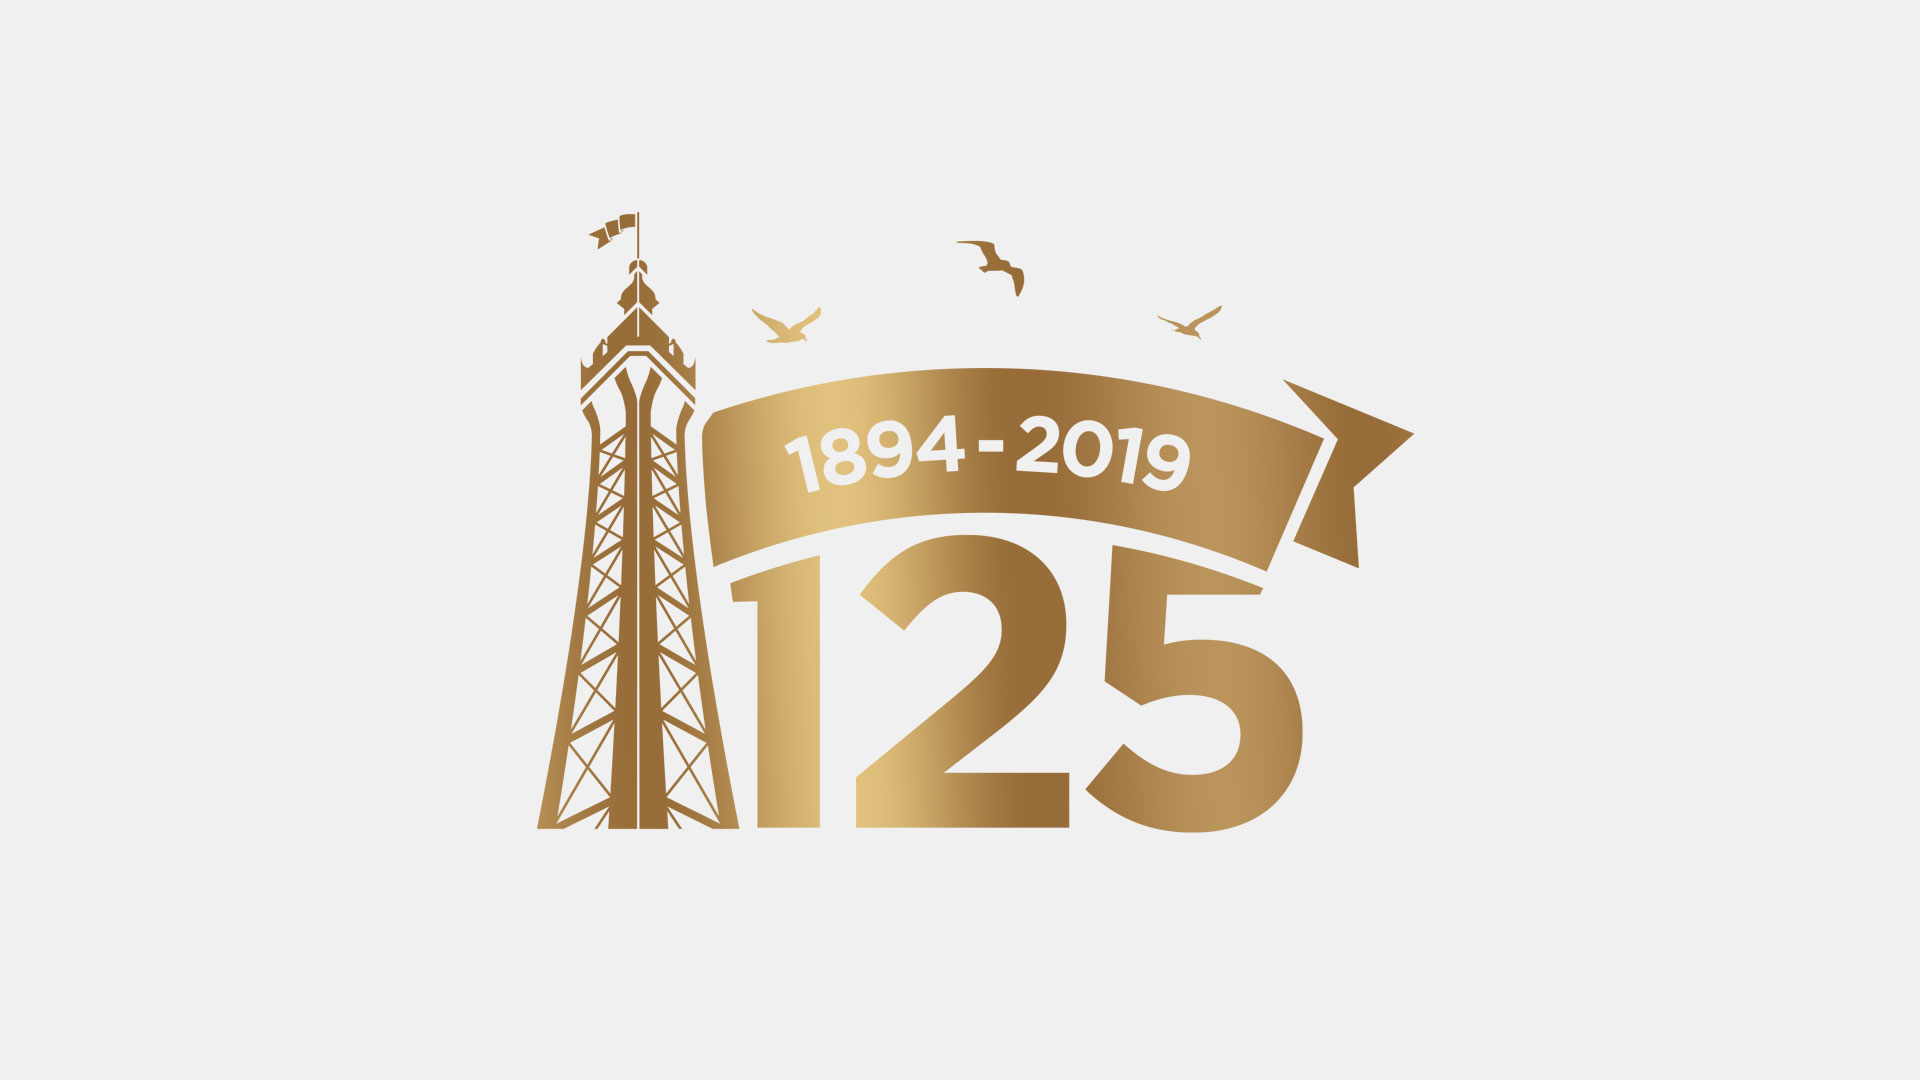 Celebrating 125 years of the Blackpool Tower